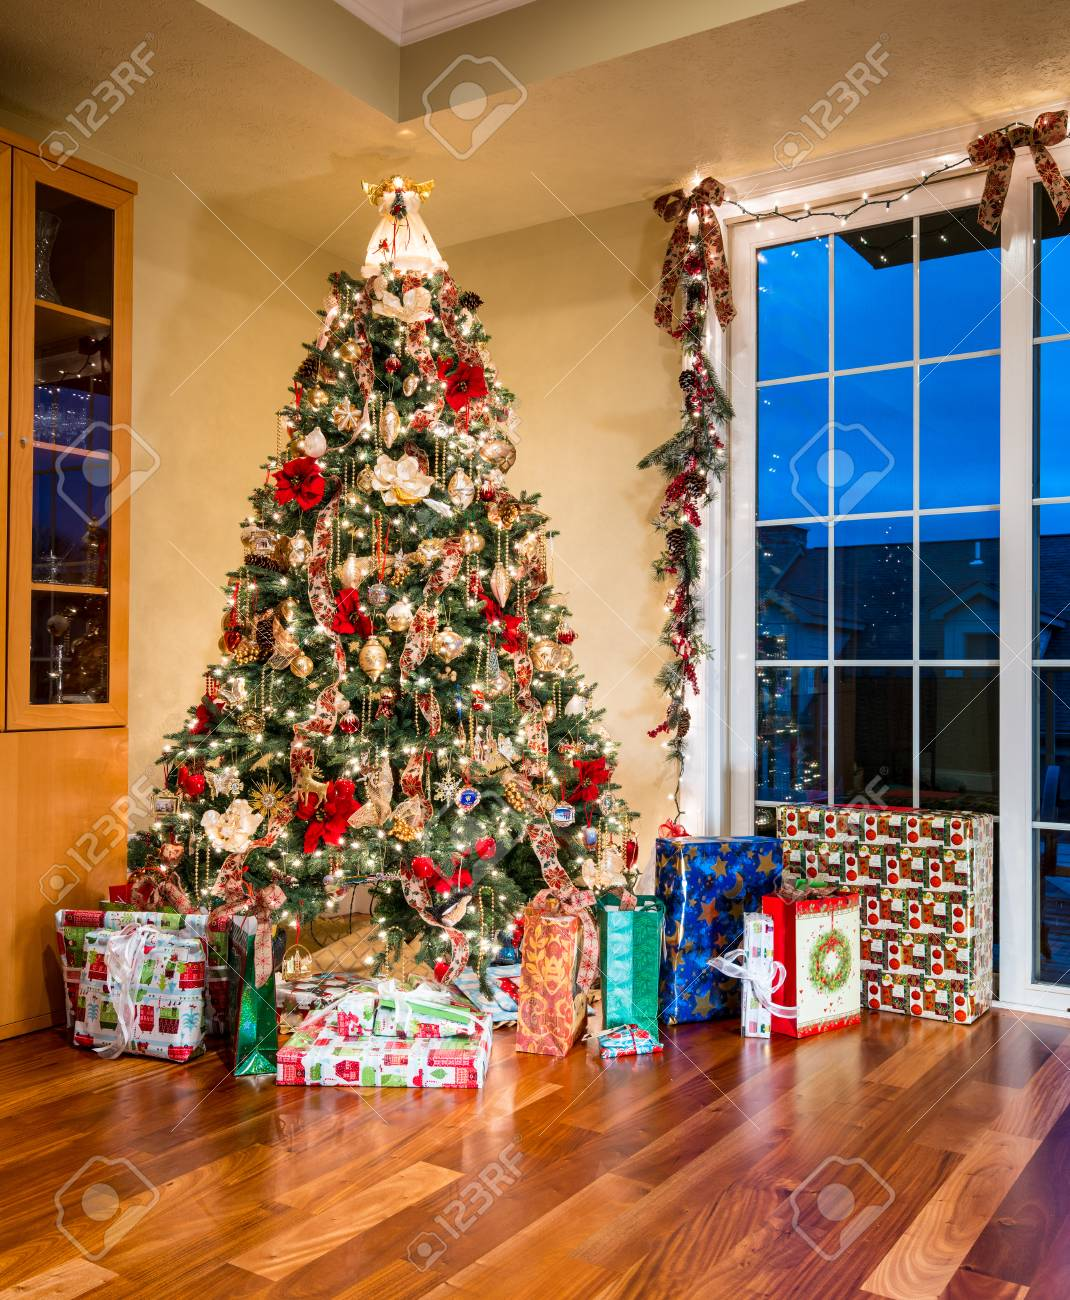 A Decorated Xmas Tree And Gifts Neatly Arranged Around The Base